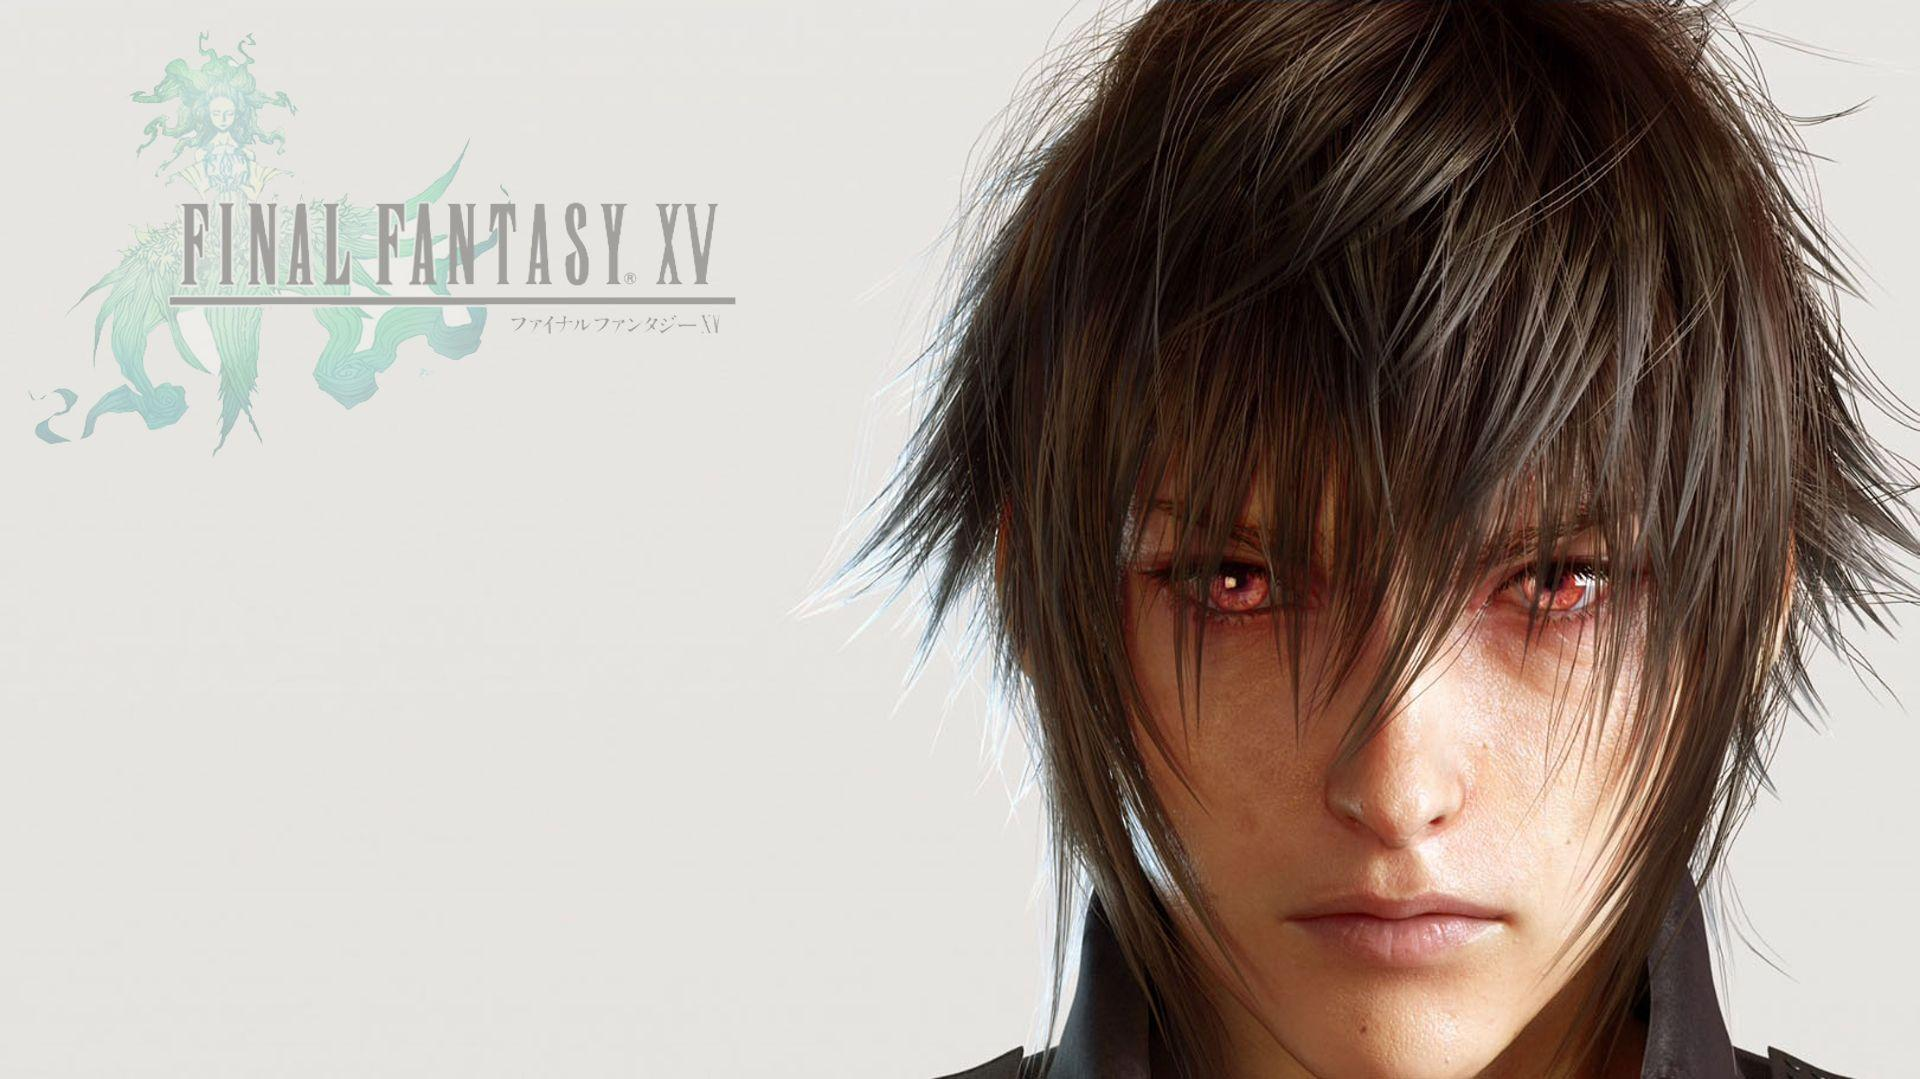 Best Final Fantasy XV Wallpapers